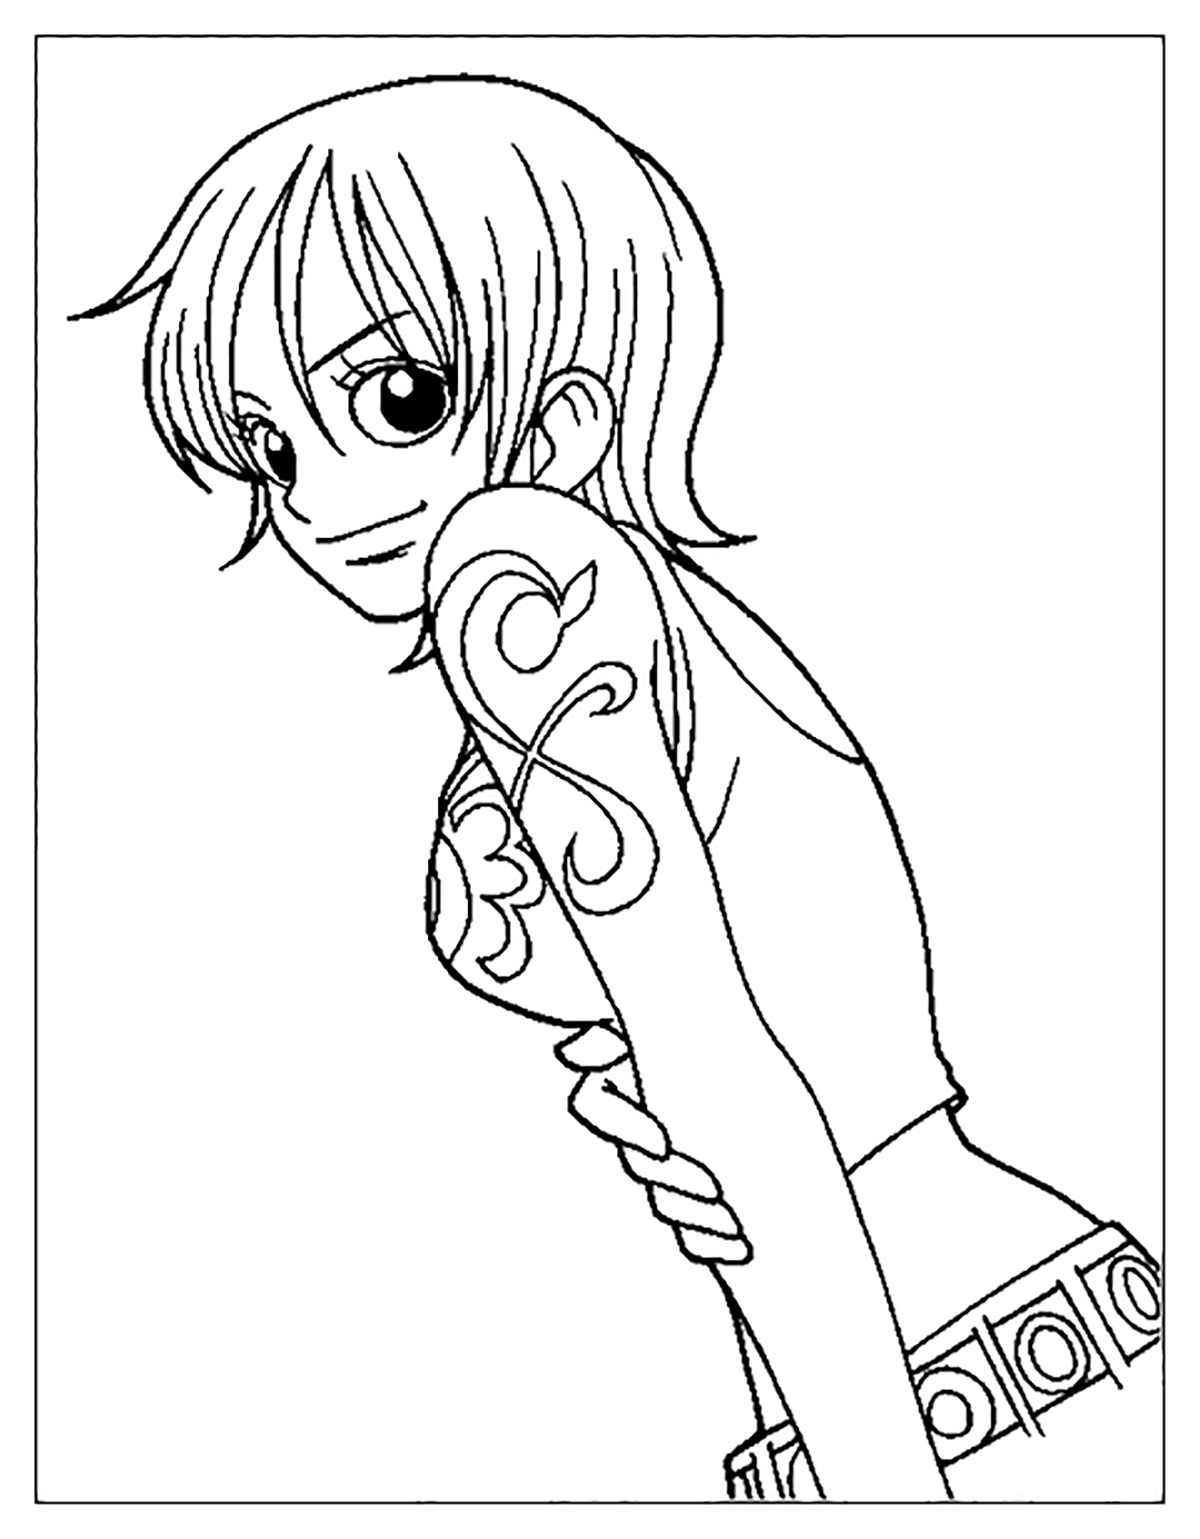 Free One Piece coloring page to print and color, for kids